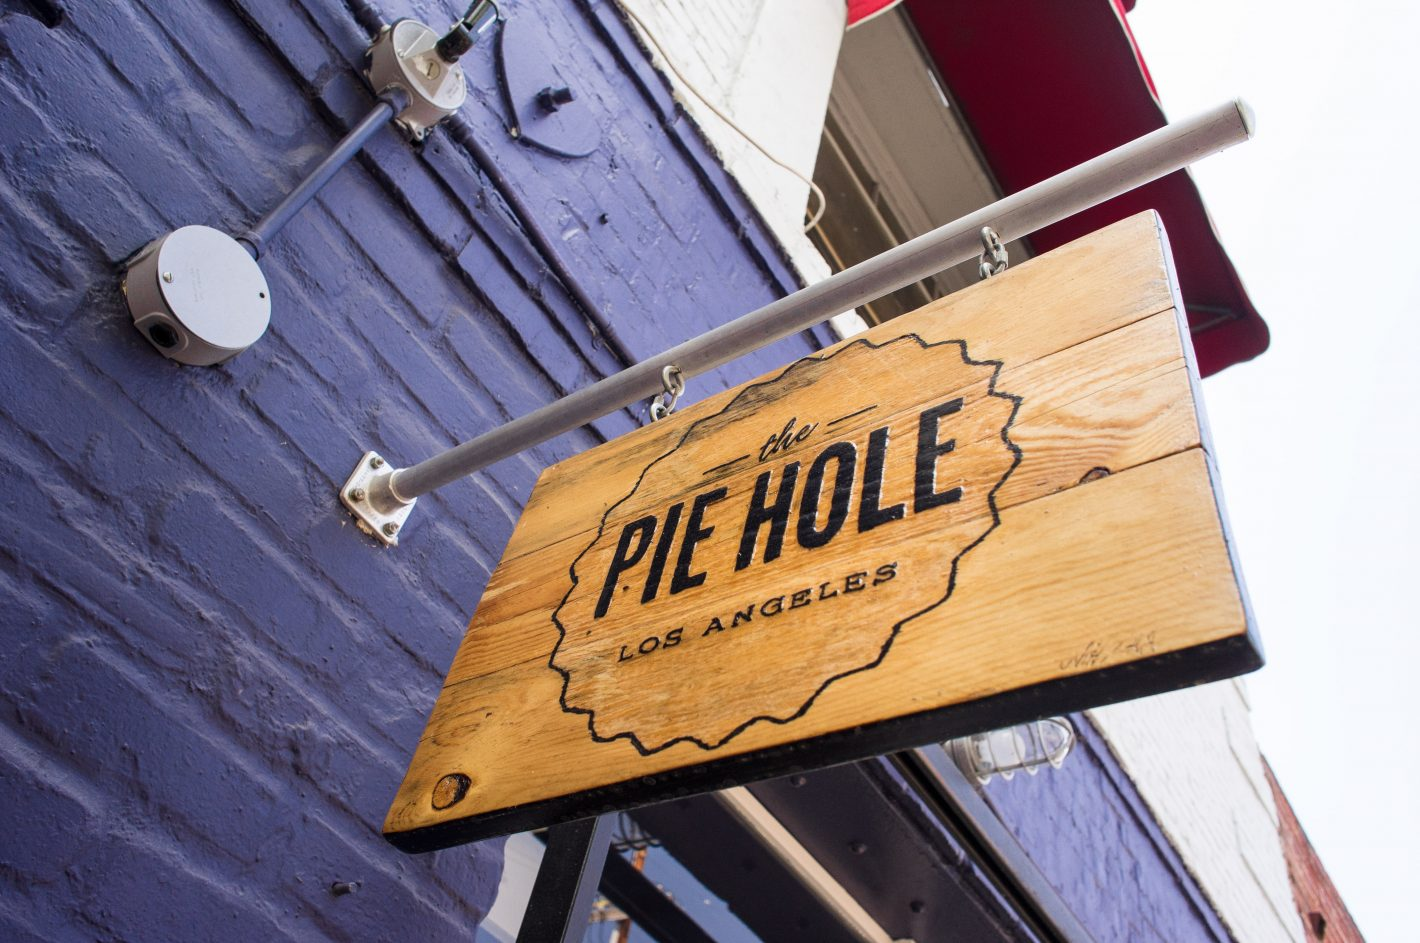 The Pie Hole L.A.上陸イメージ①